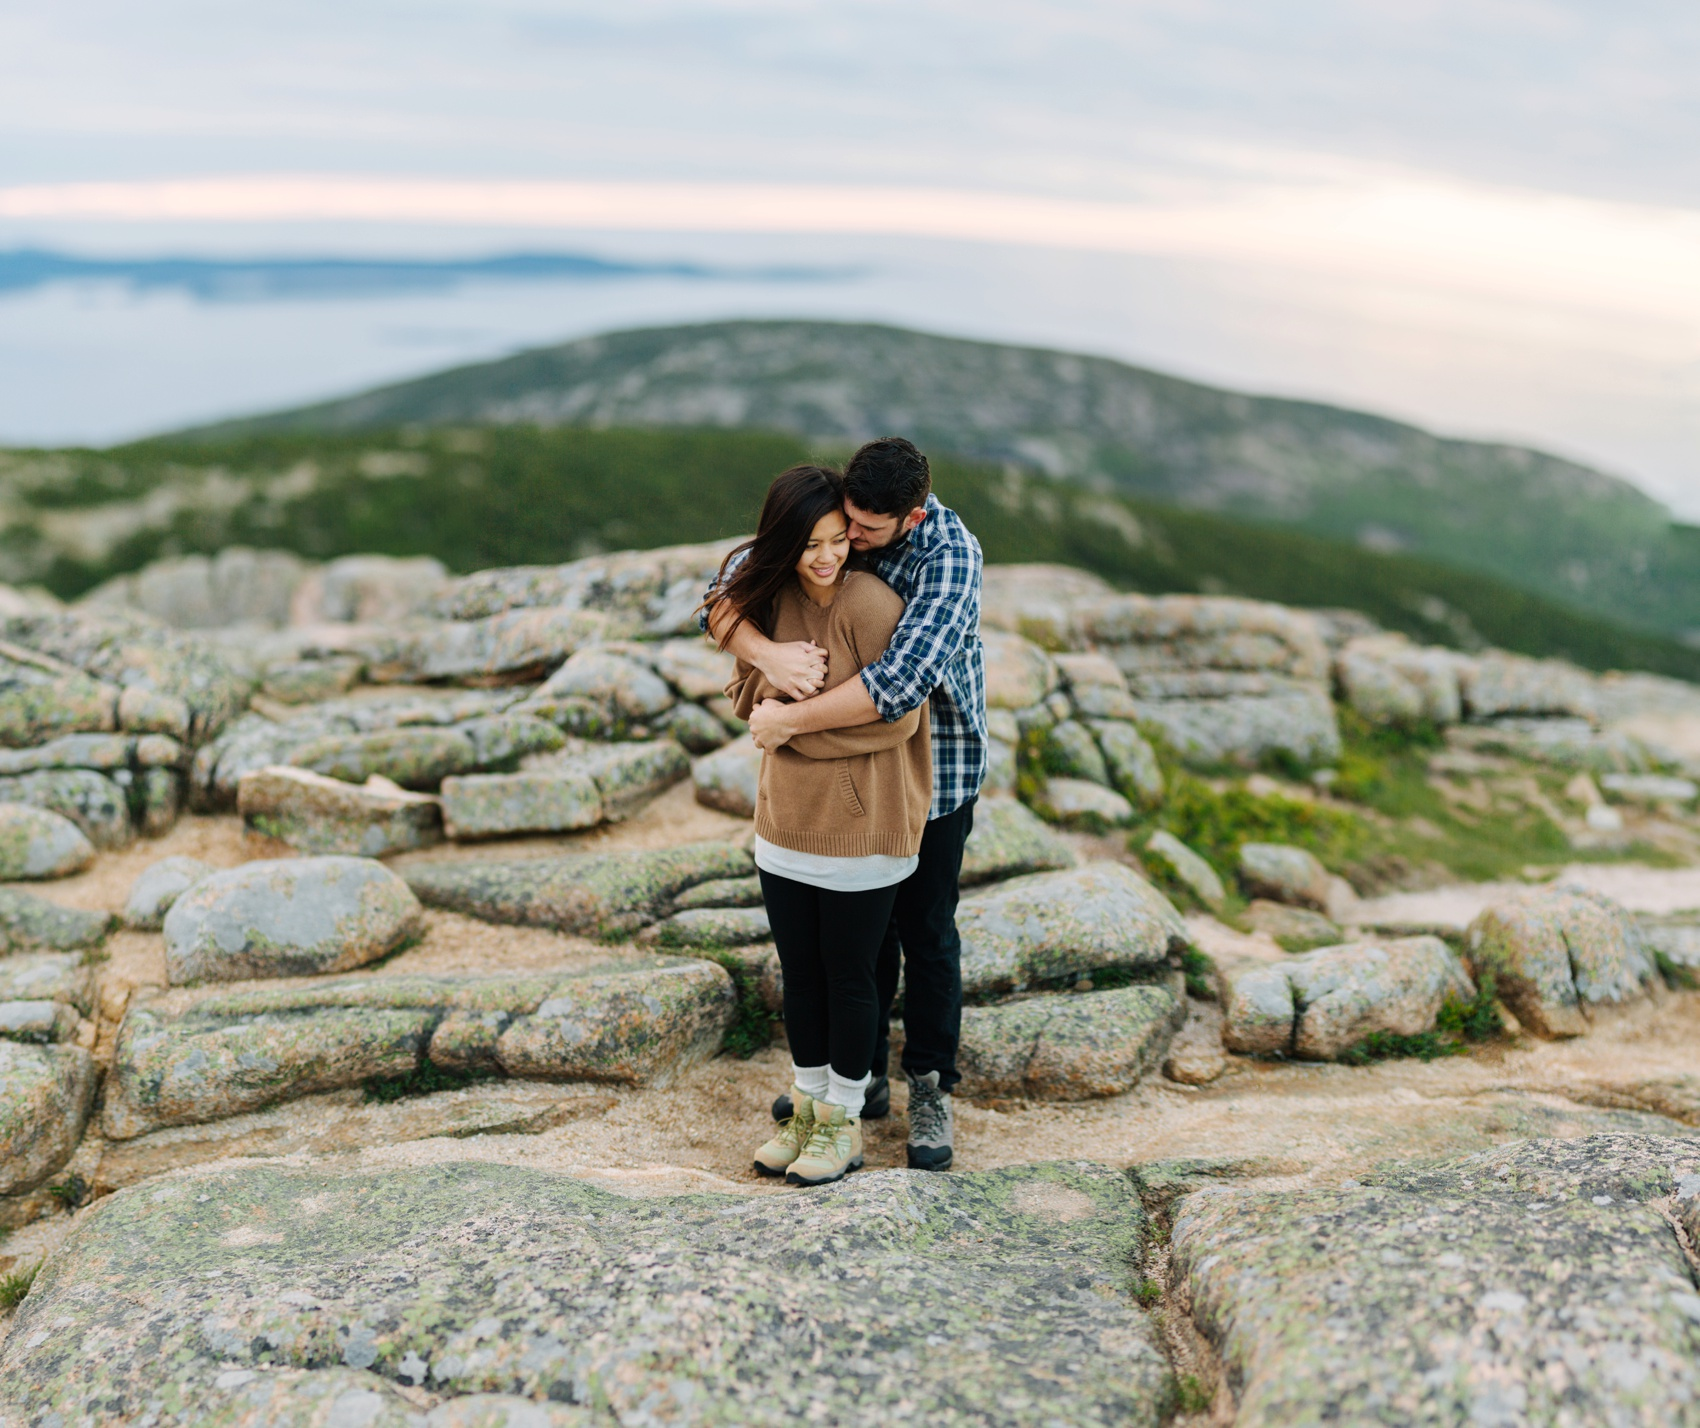 jake and jill acacdia national park engagement session cadillac mountain engagement session jordan pond engagement session maine engagement session jake and katie_0011